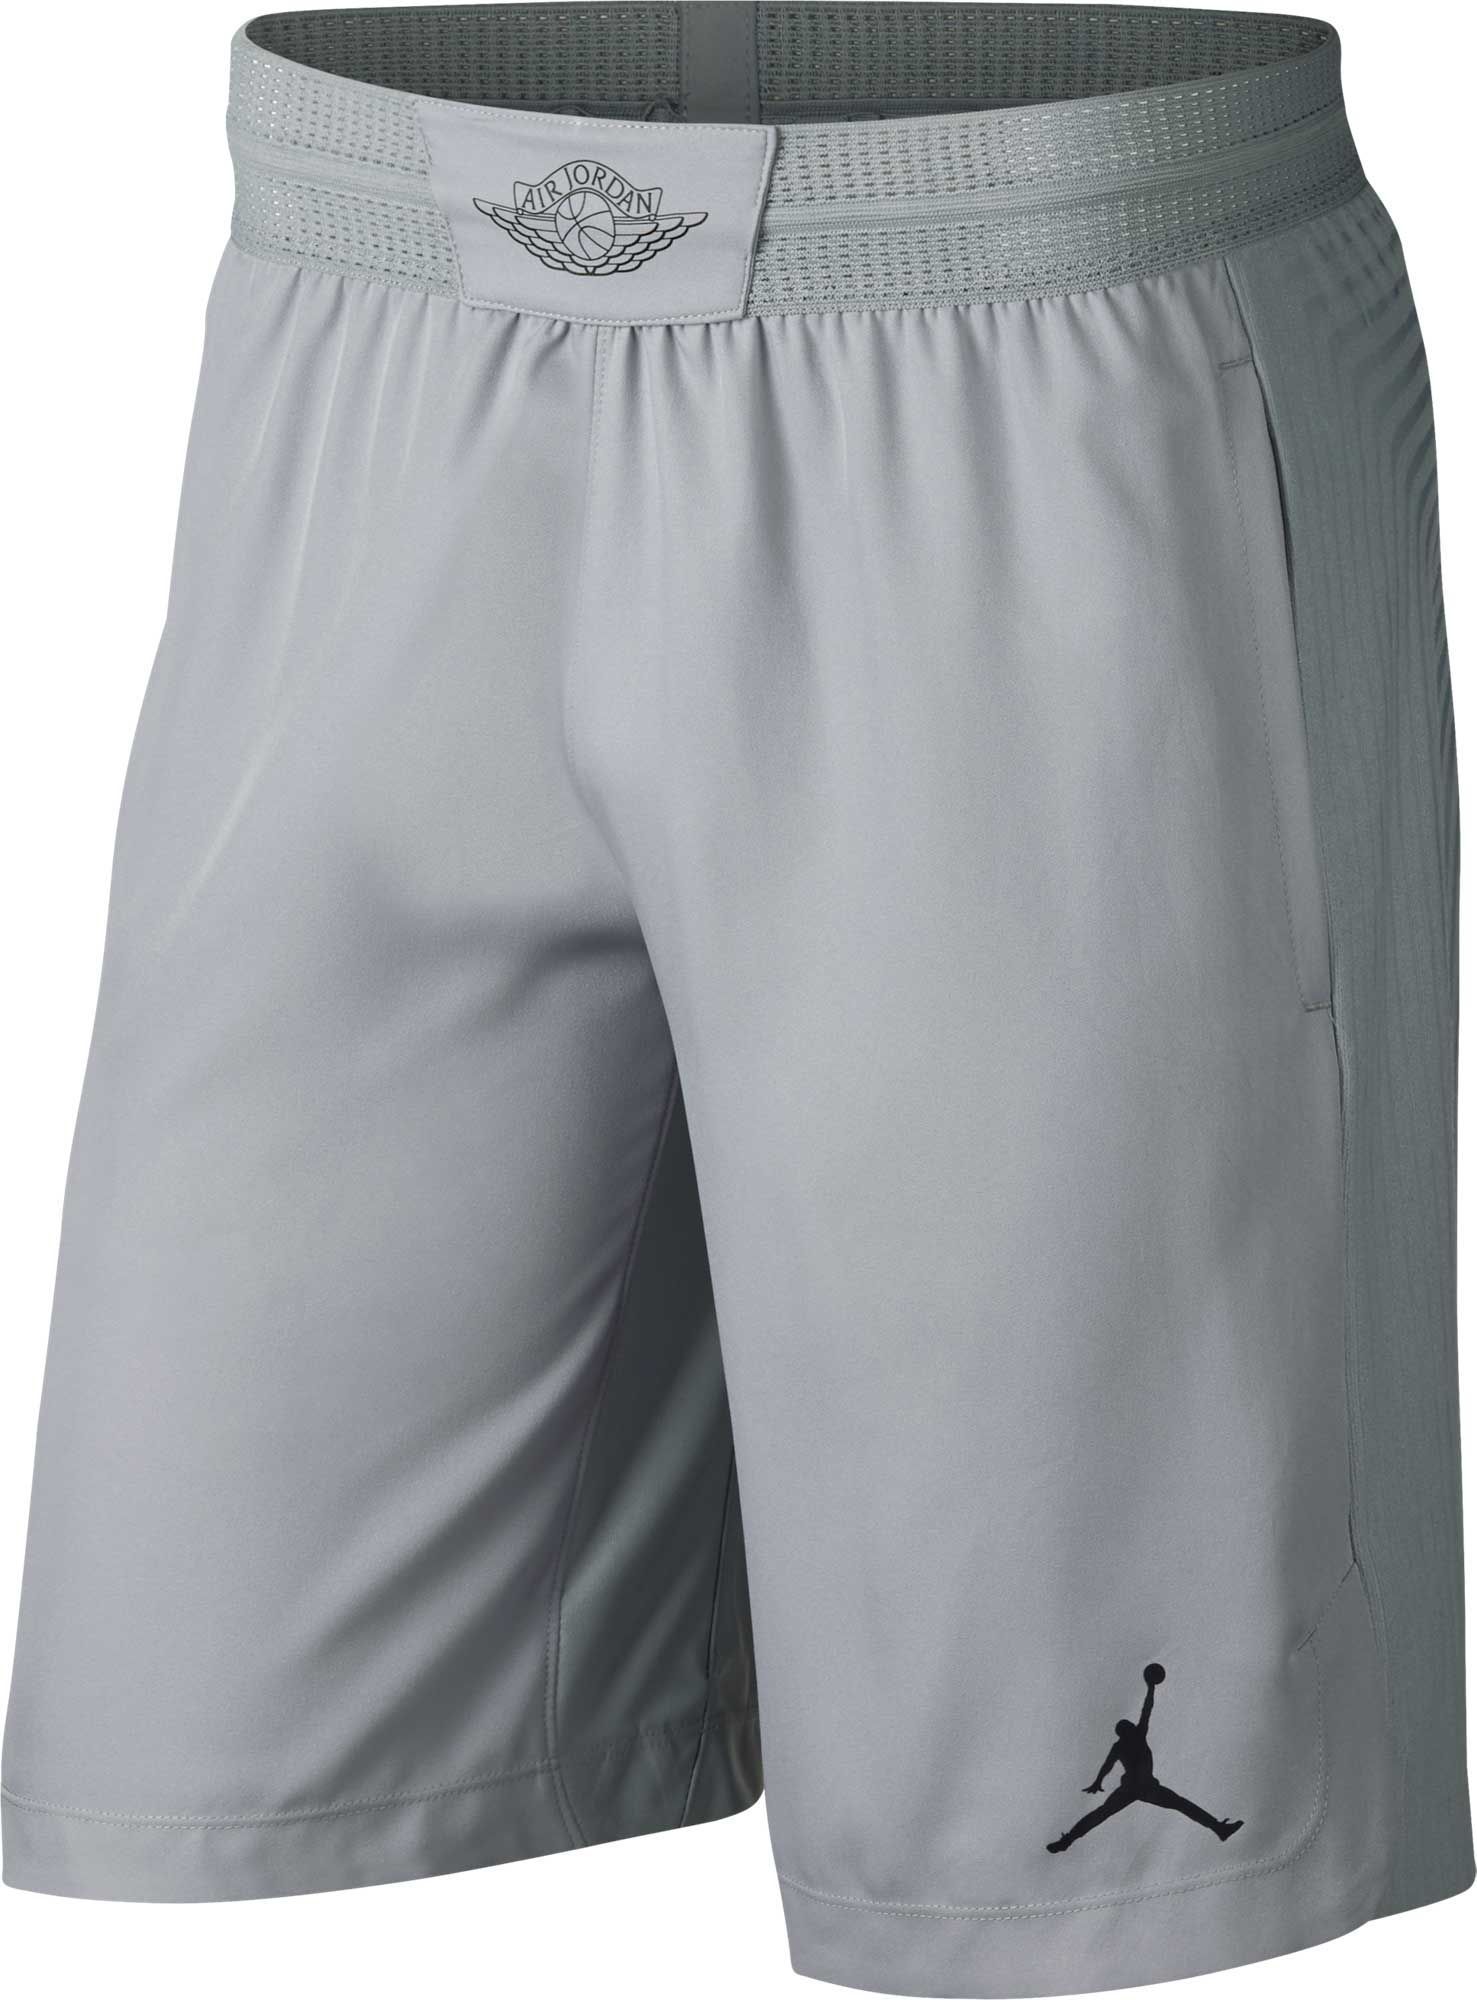 c0ce854949528c Jordan Men s Ultimate Flight Basketball Shorts